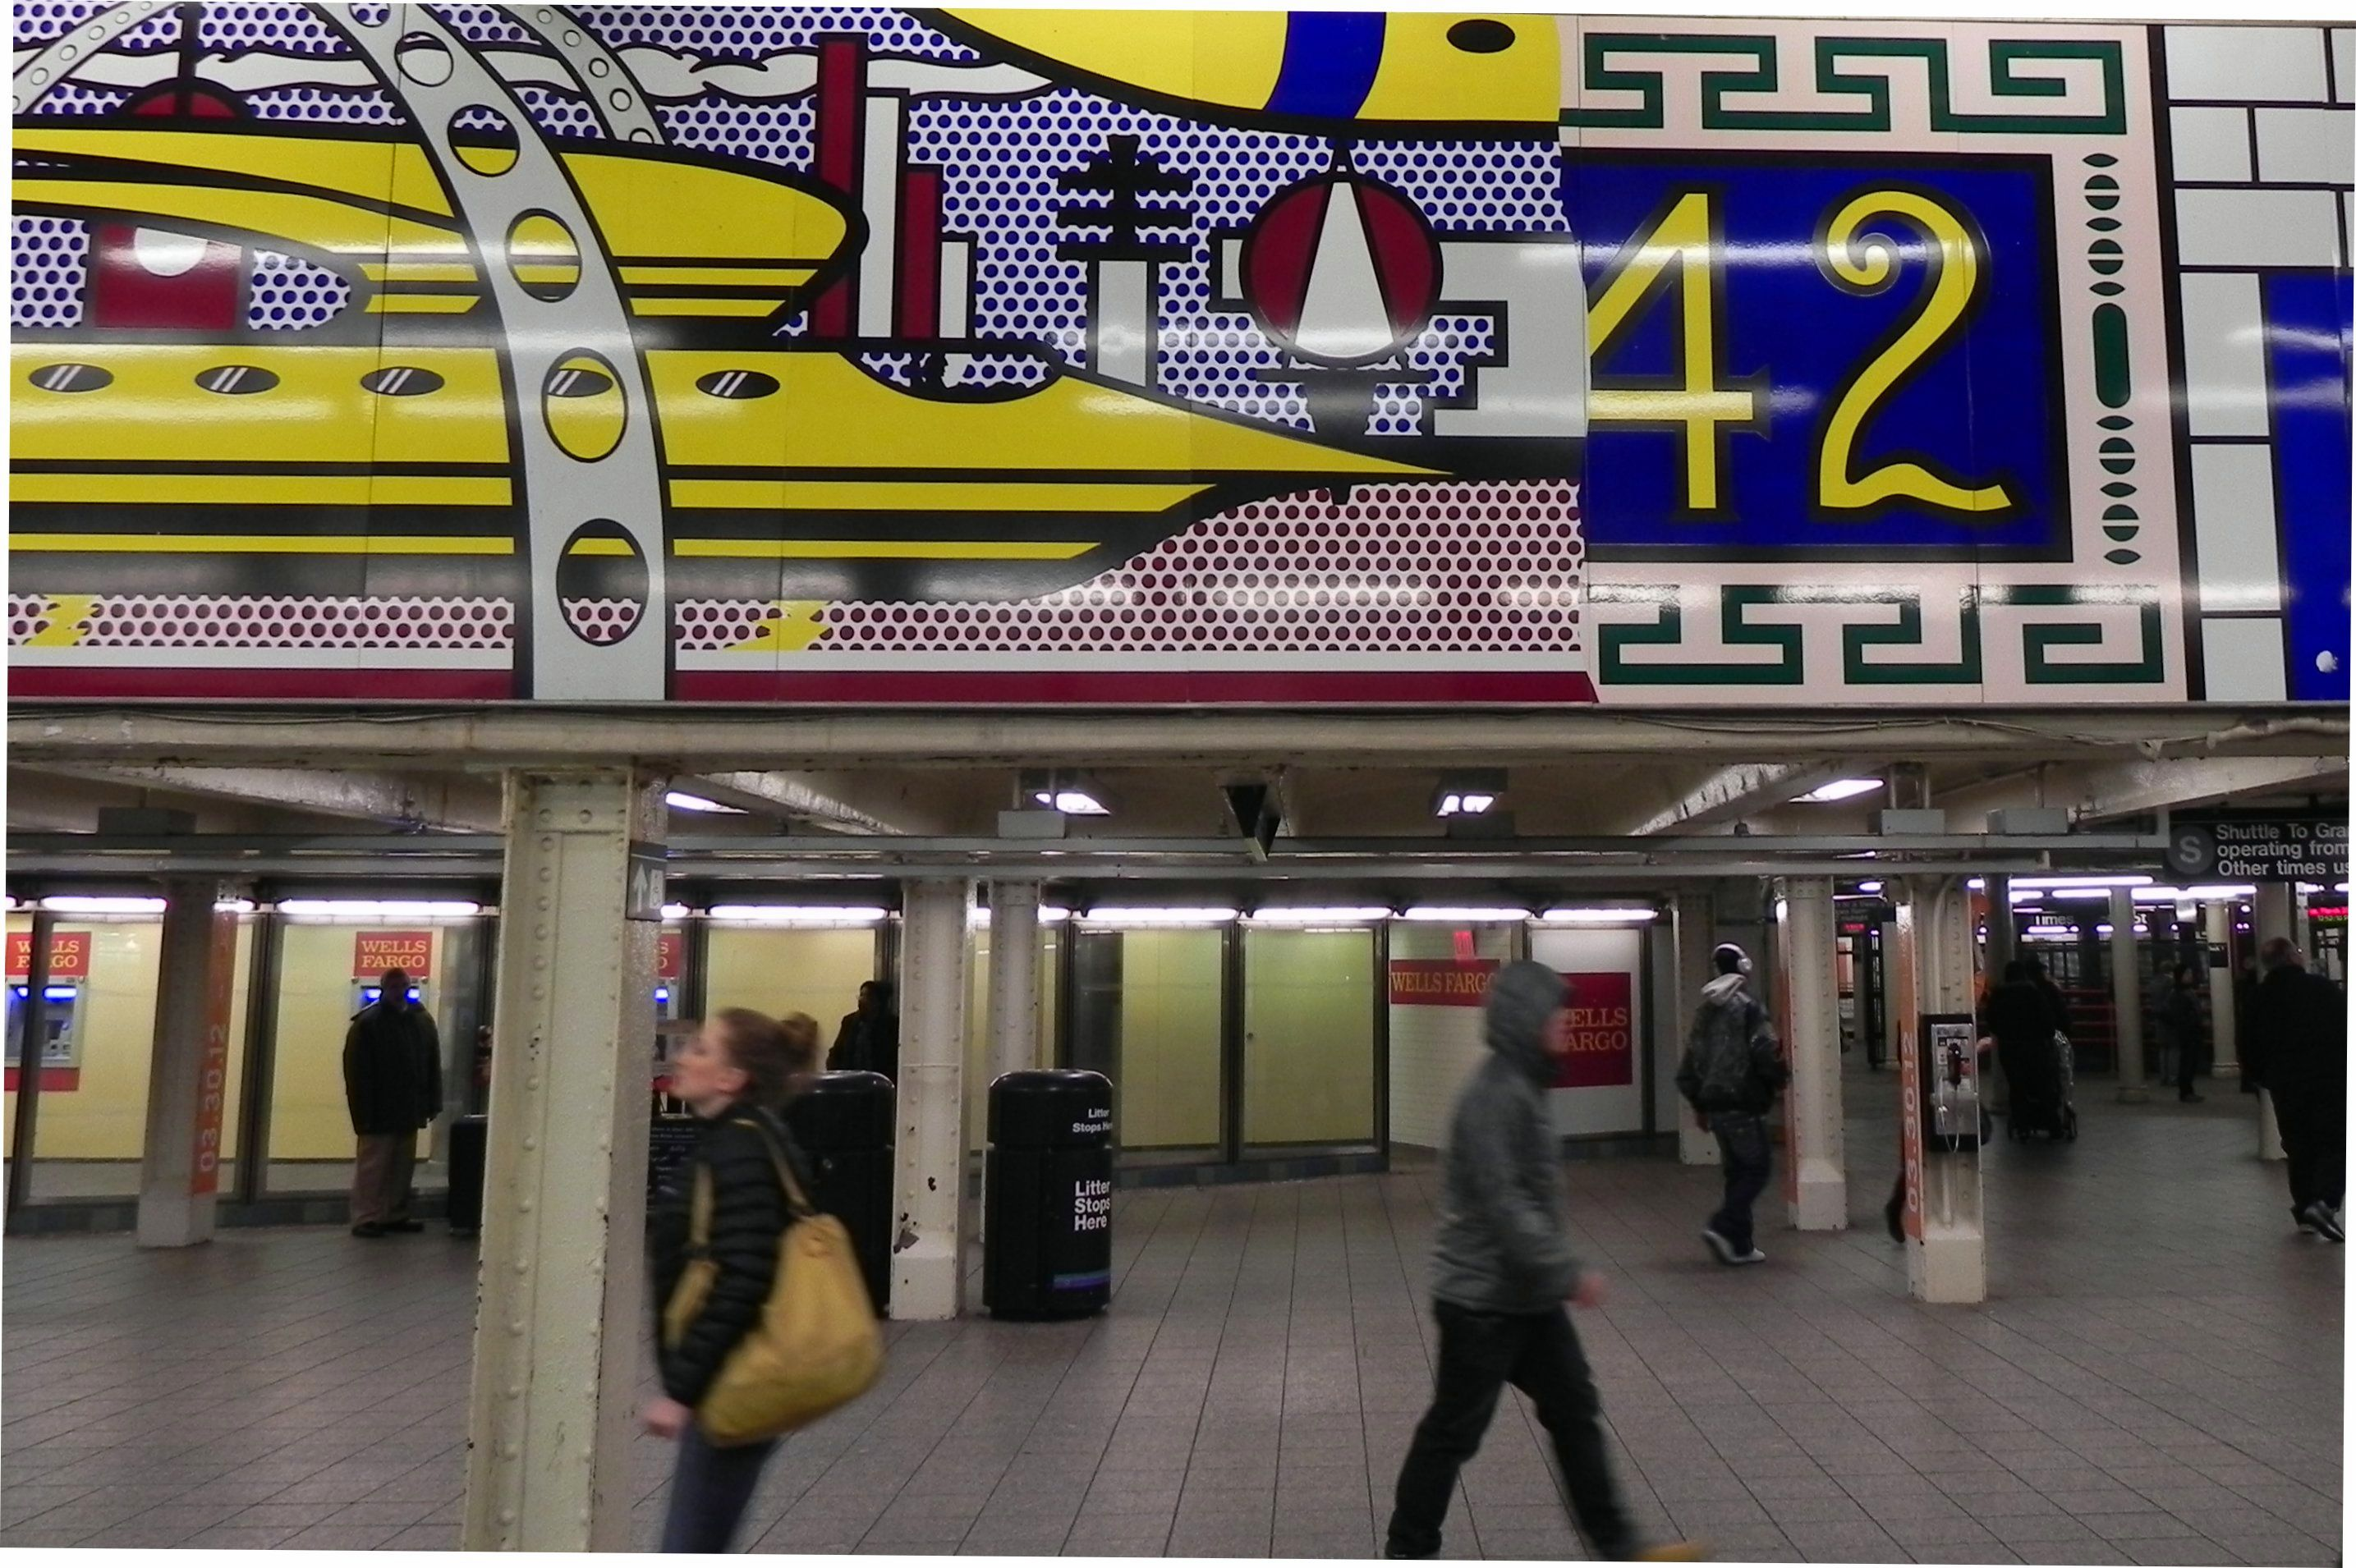 Image result for There's a huge mural by Roy Lichtenstein in the 42nd St station